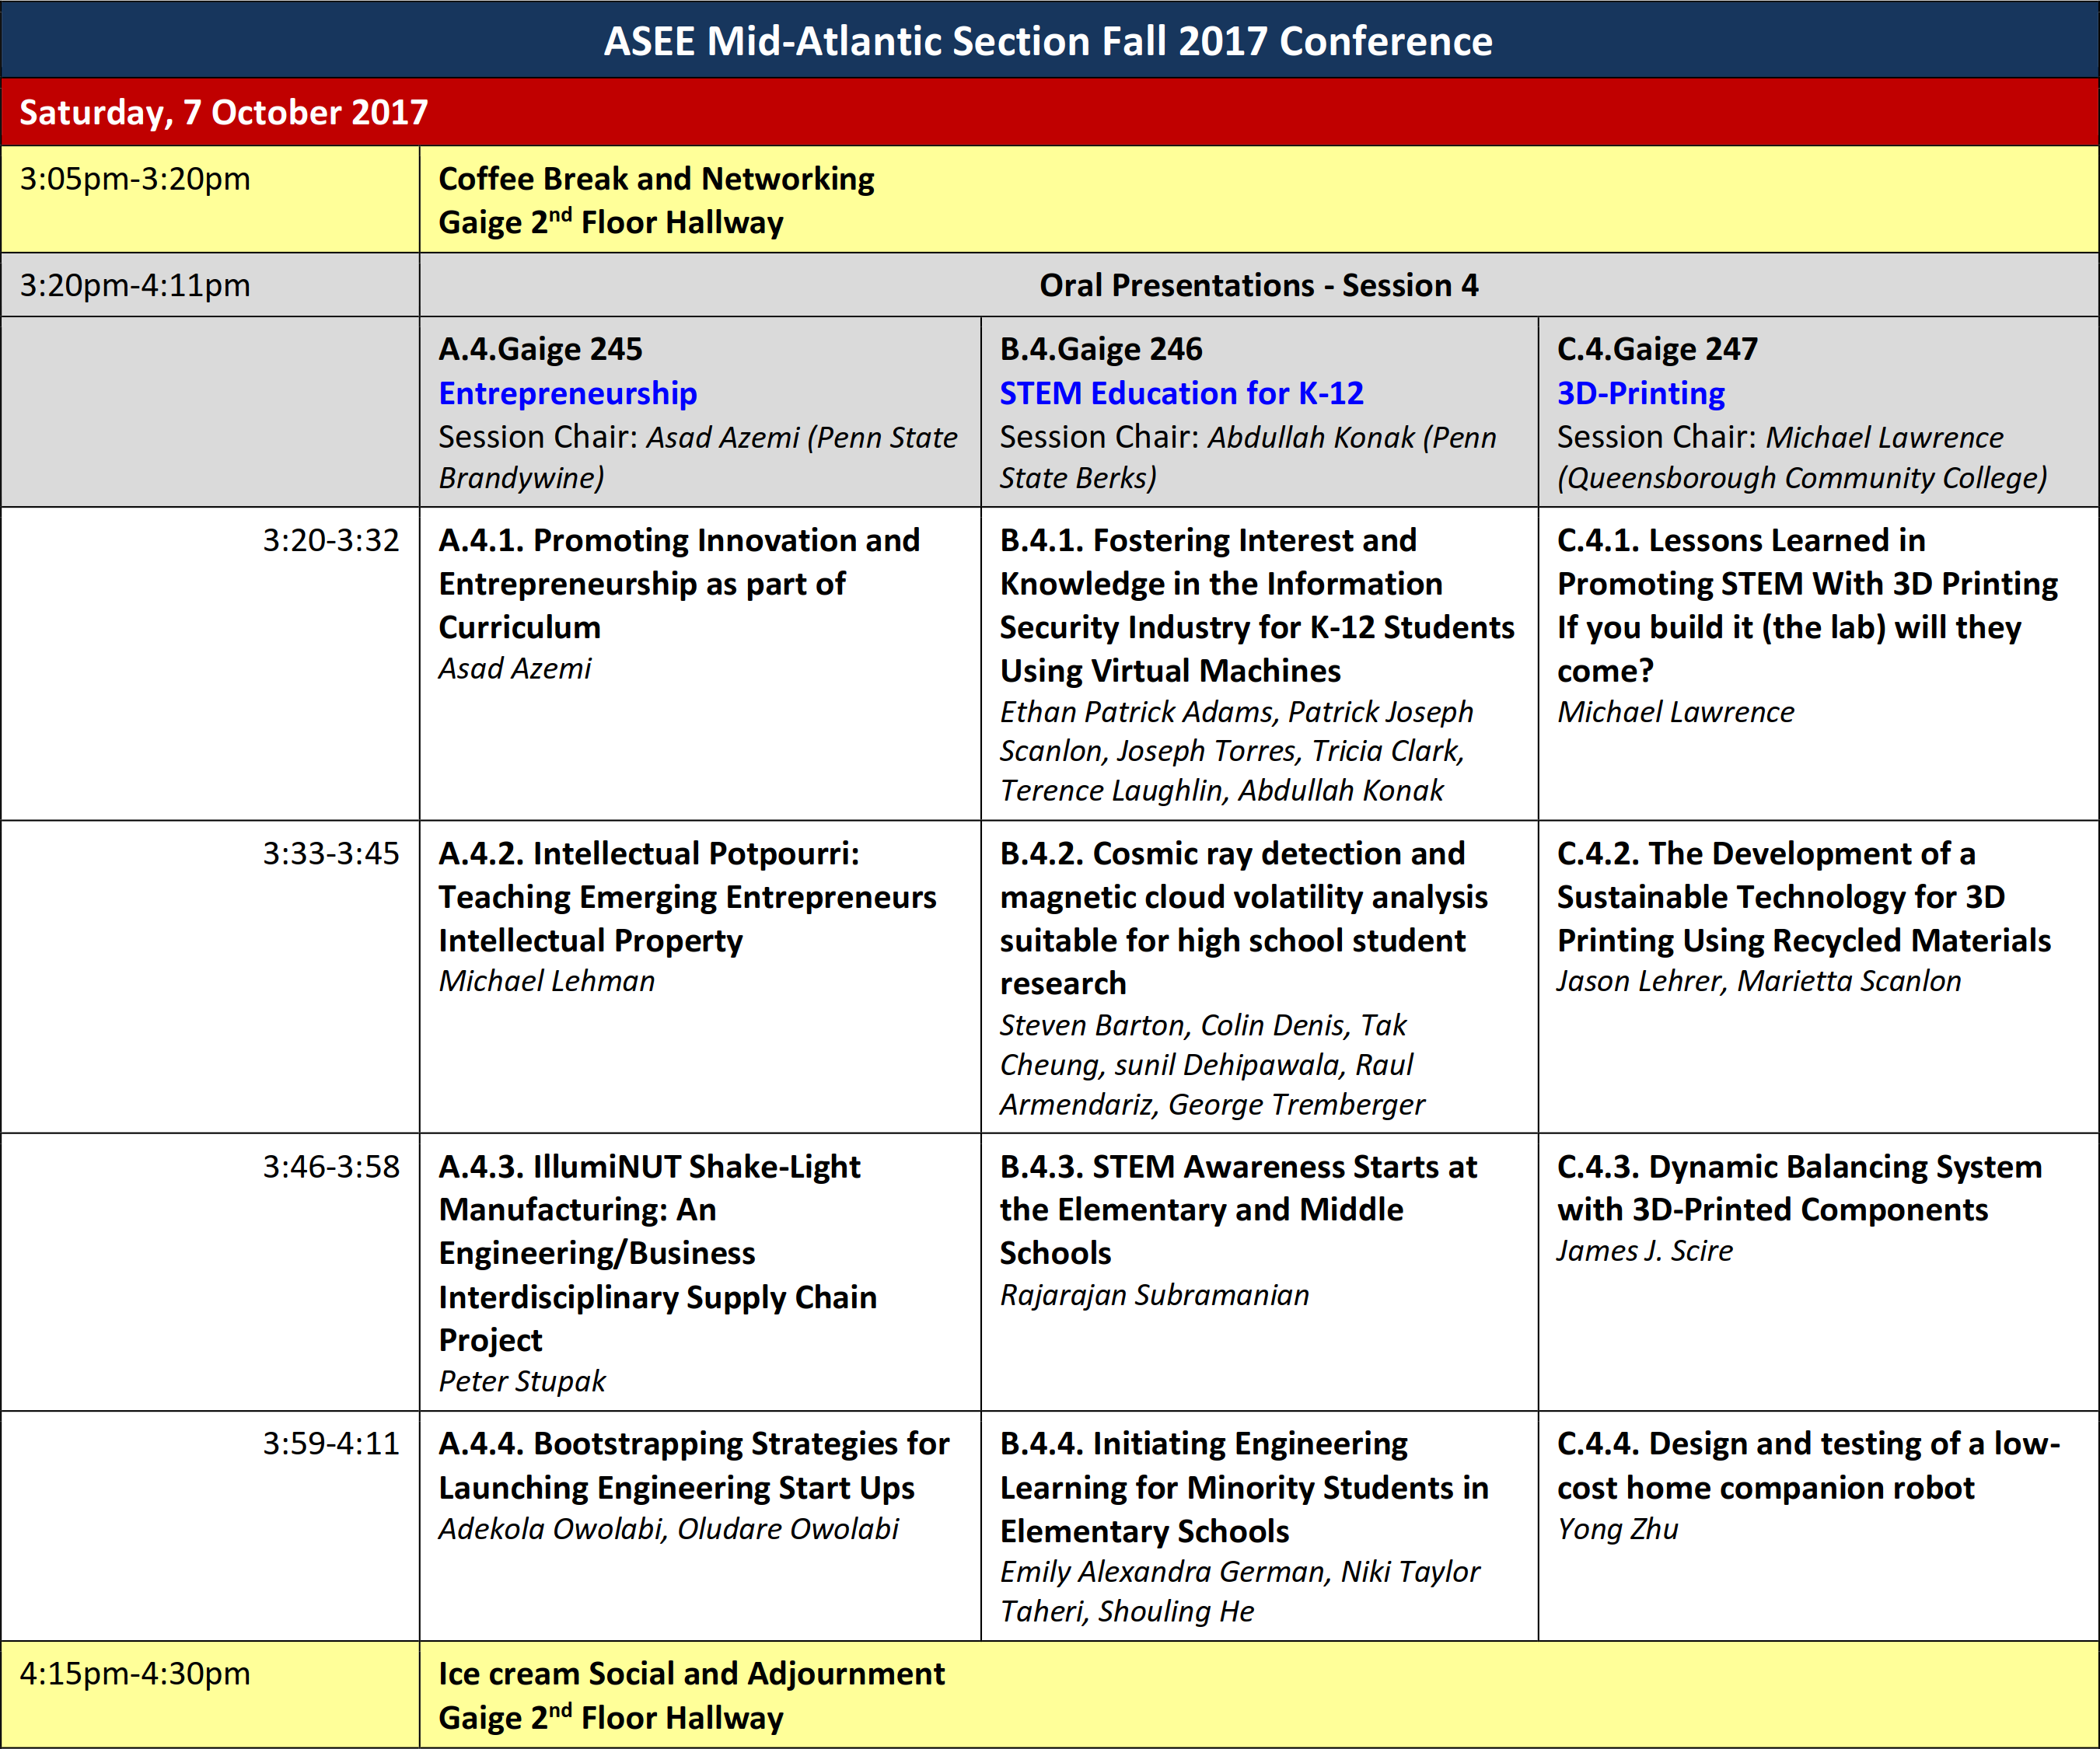 Presentation times locations asee mid atlantic fall 2017 session 4 baditri Images